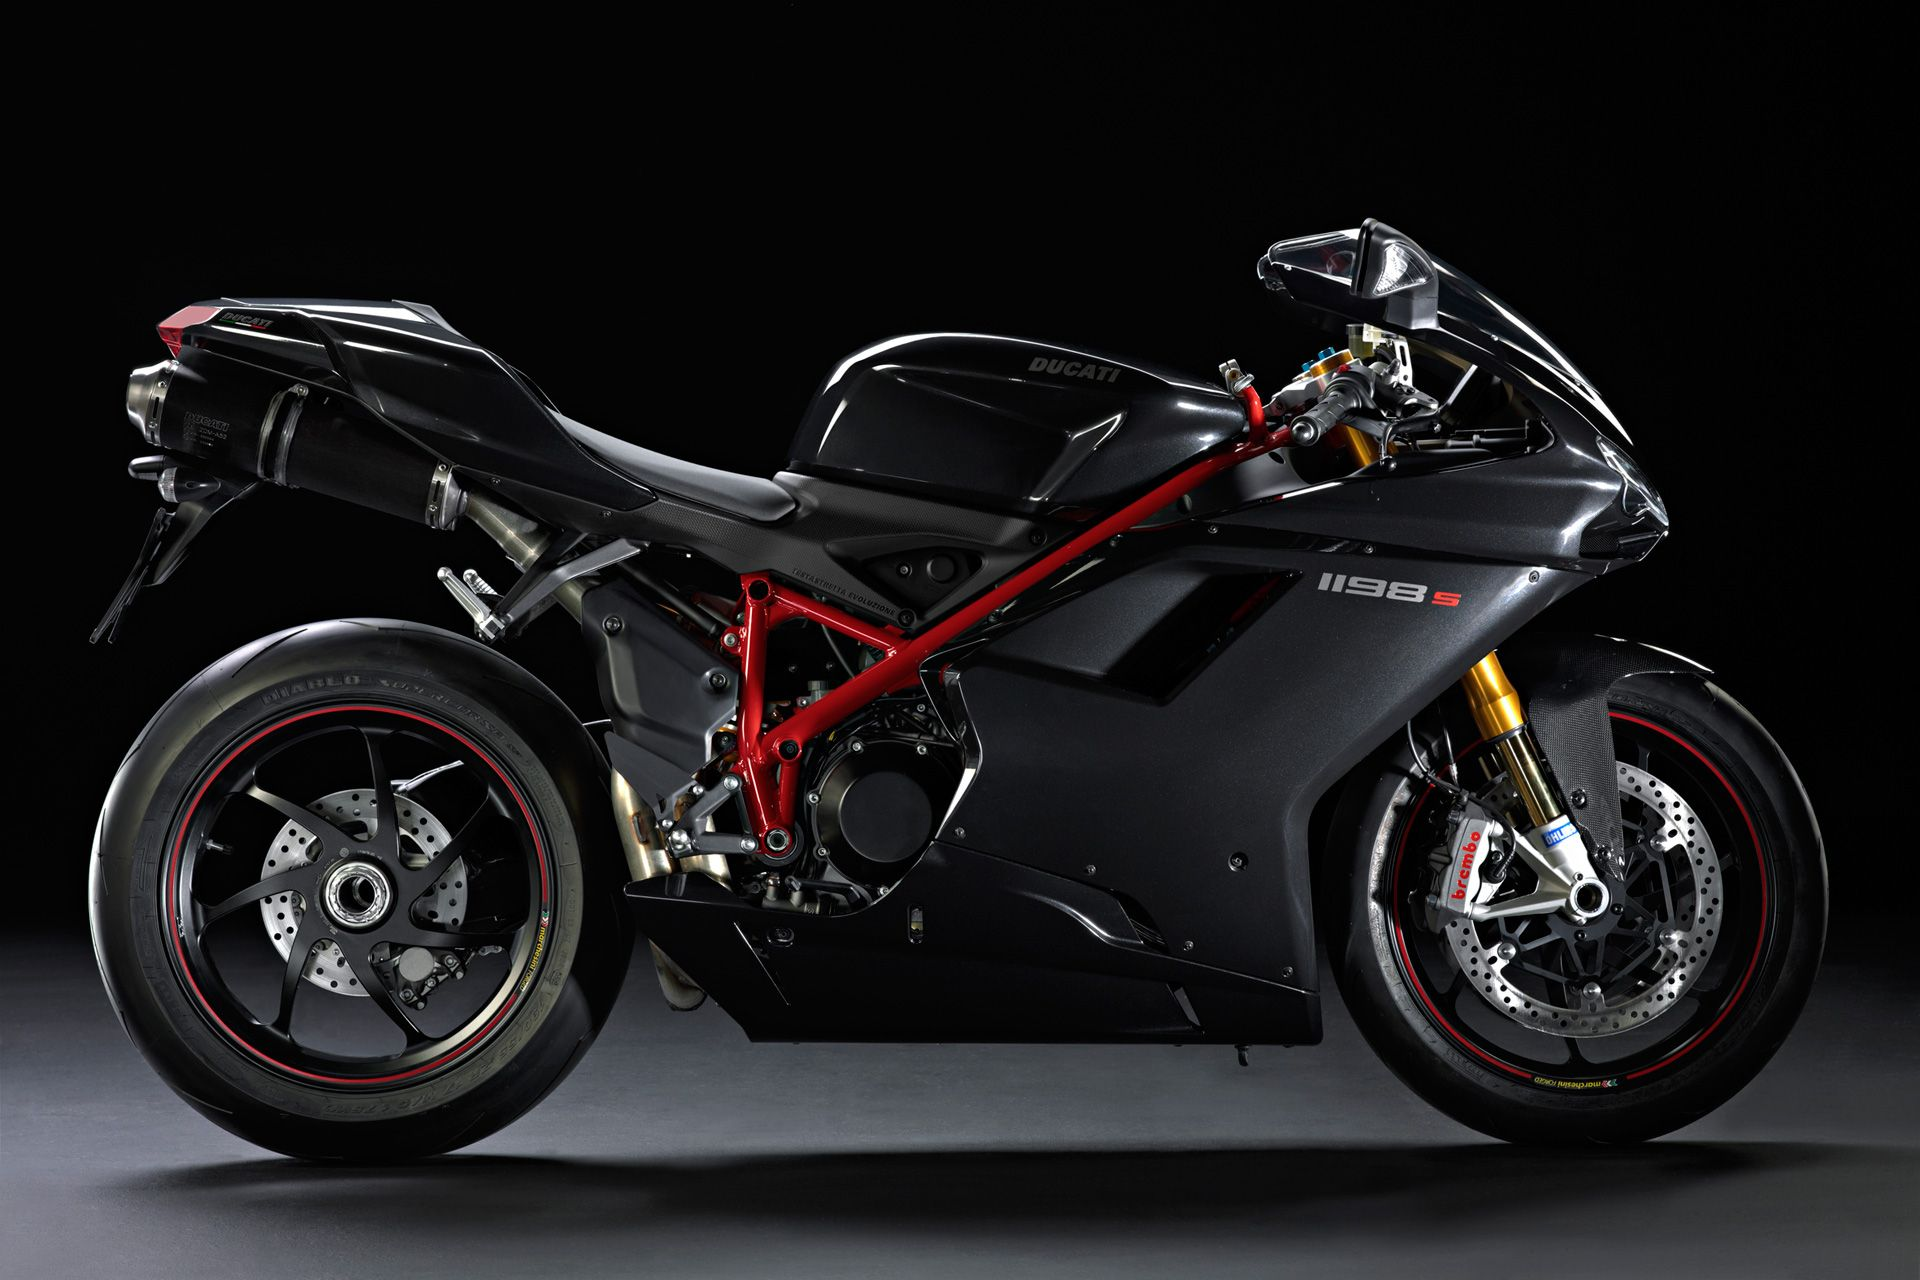 superbike | ducati superbike 1198 black color view 300x200 ducati